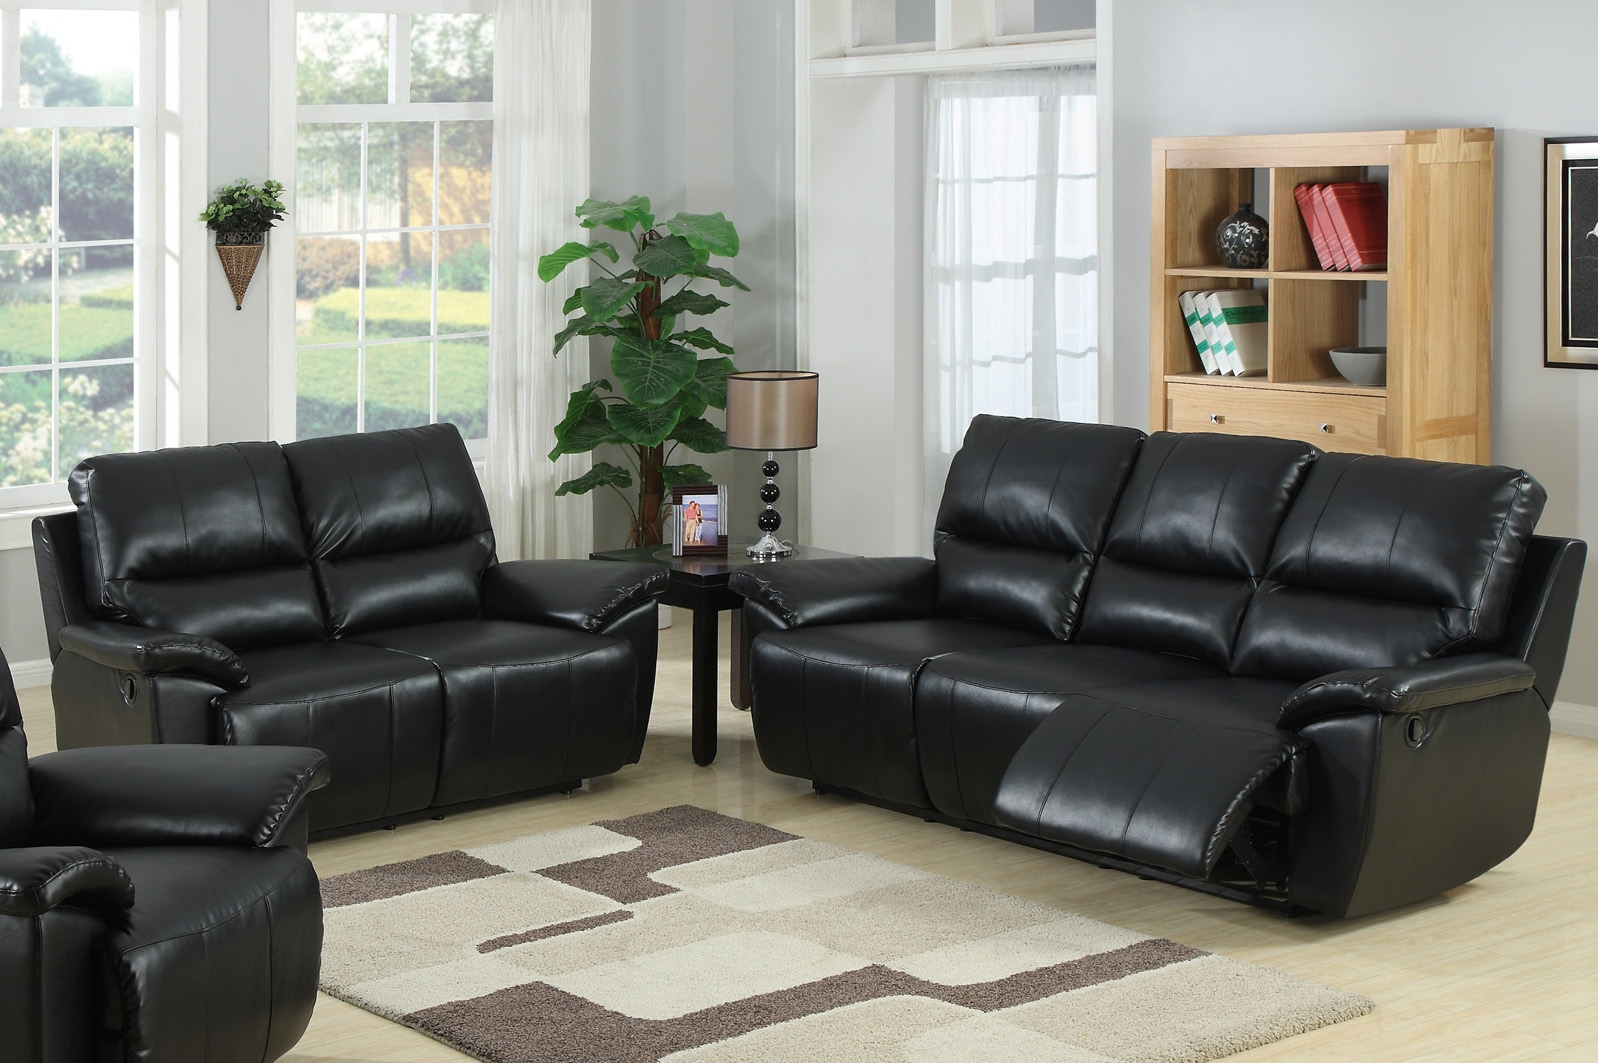 Black leather sofa set coaster samuel 3 piece leather sofa set in black 50168x 3pc pkg thesofa for Living room with black leather furniture